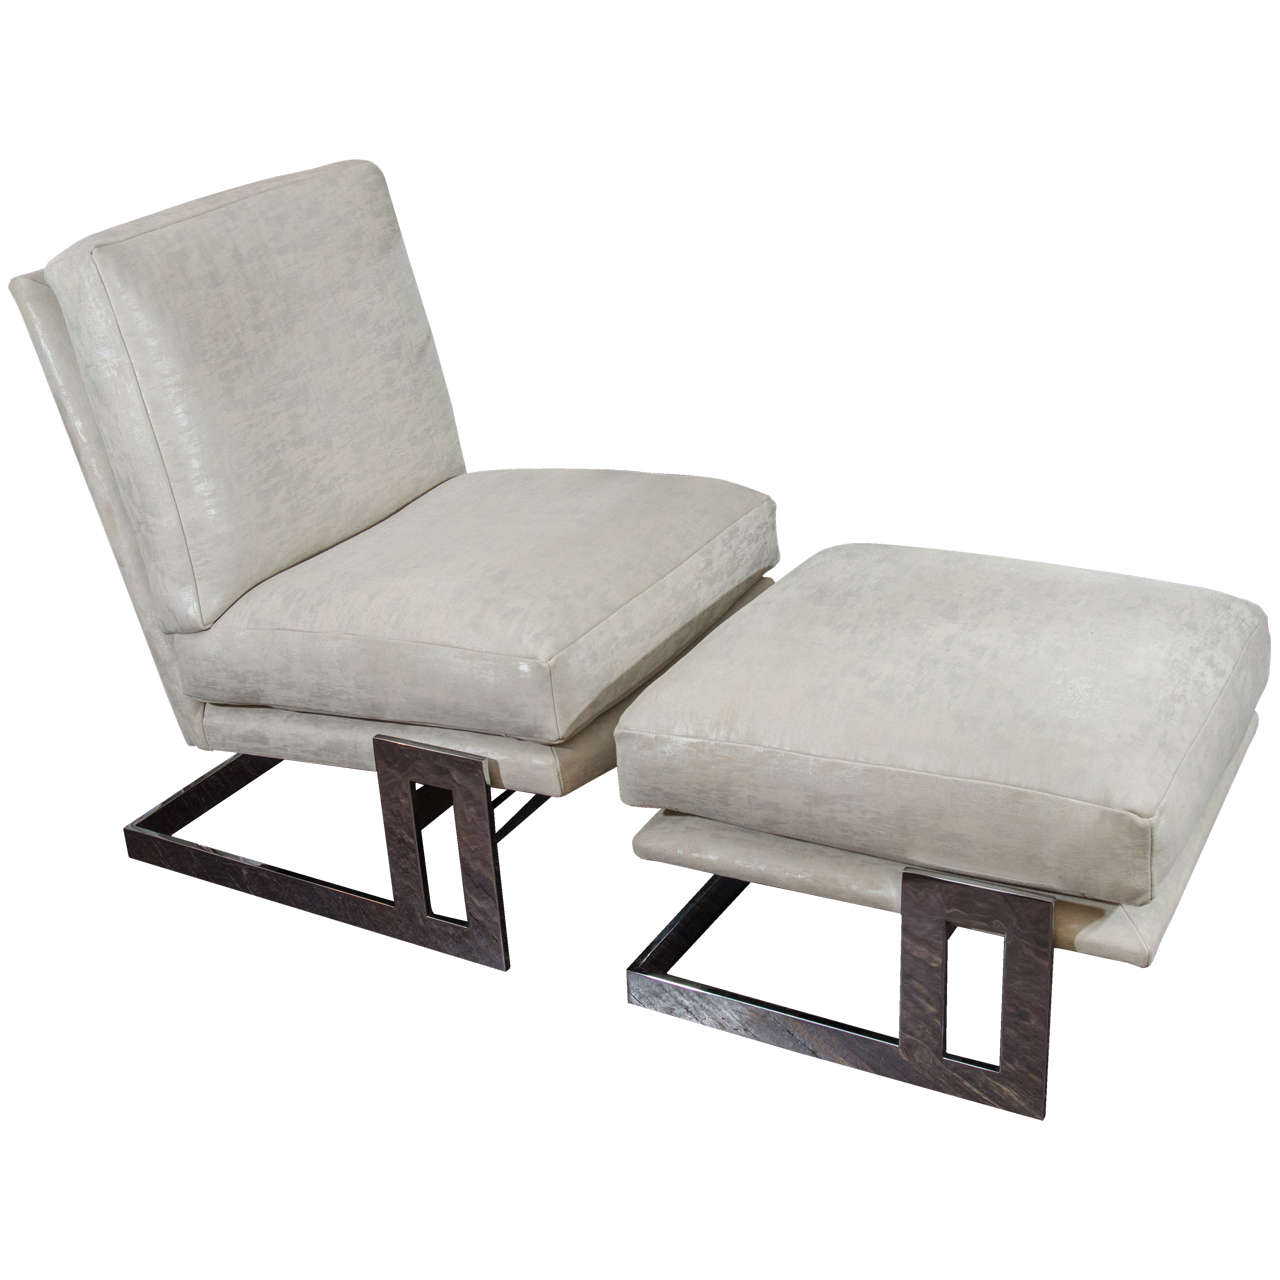 milo baughman chair cool chairs for boys room 1970s chrome framed with ottoman